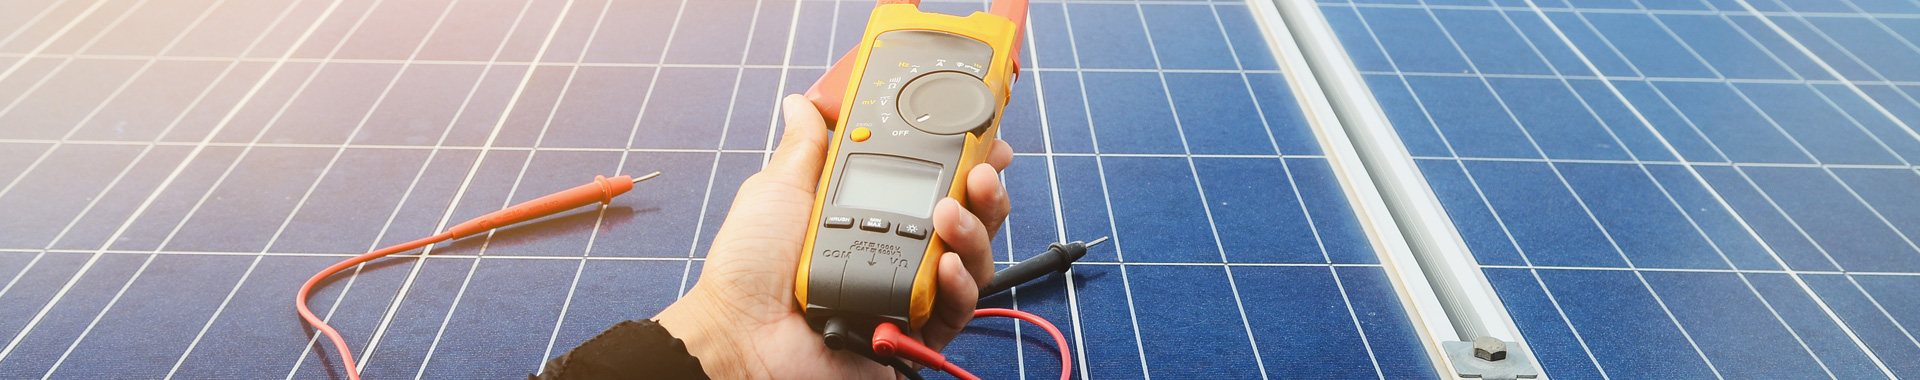 Solar panel checkup for an optimal efficiency